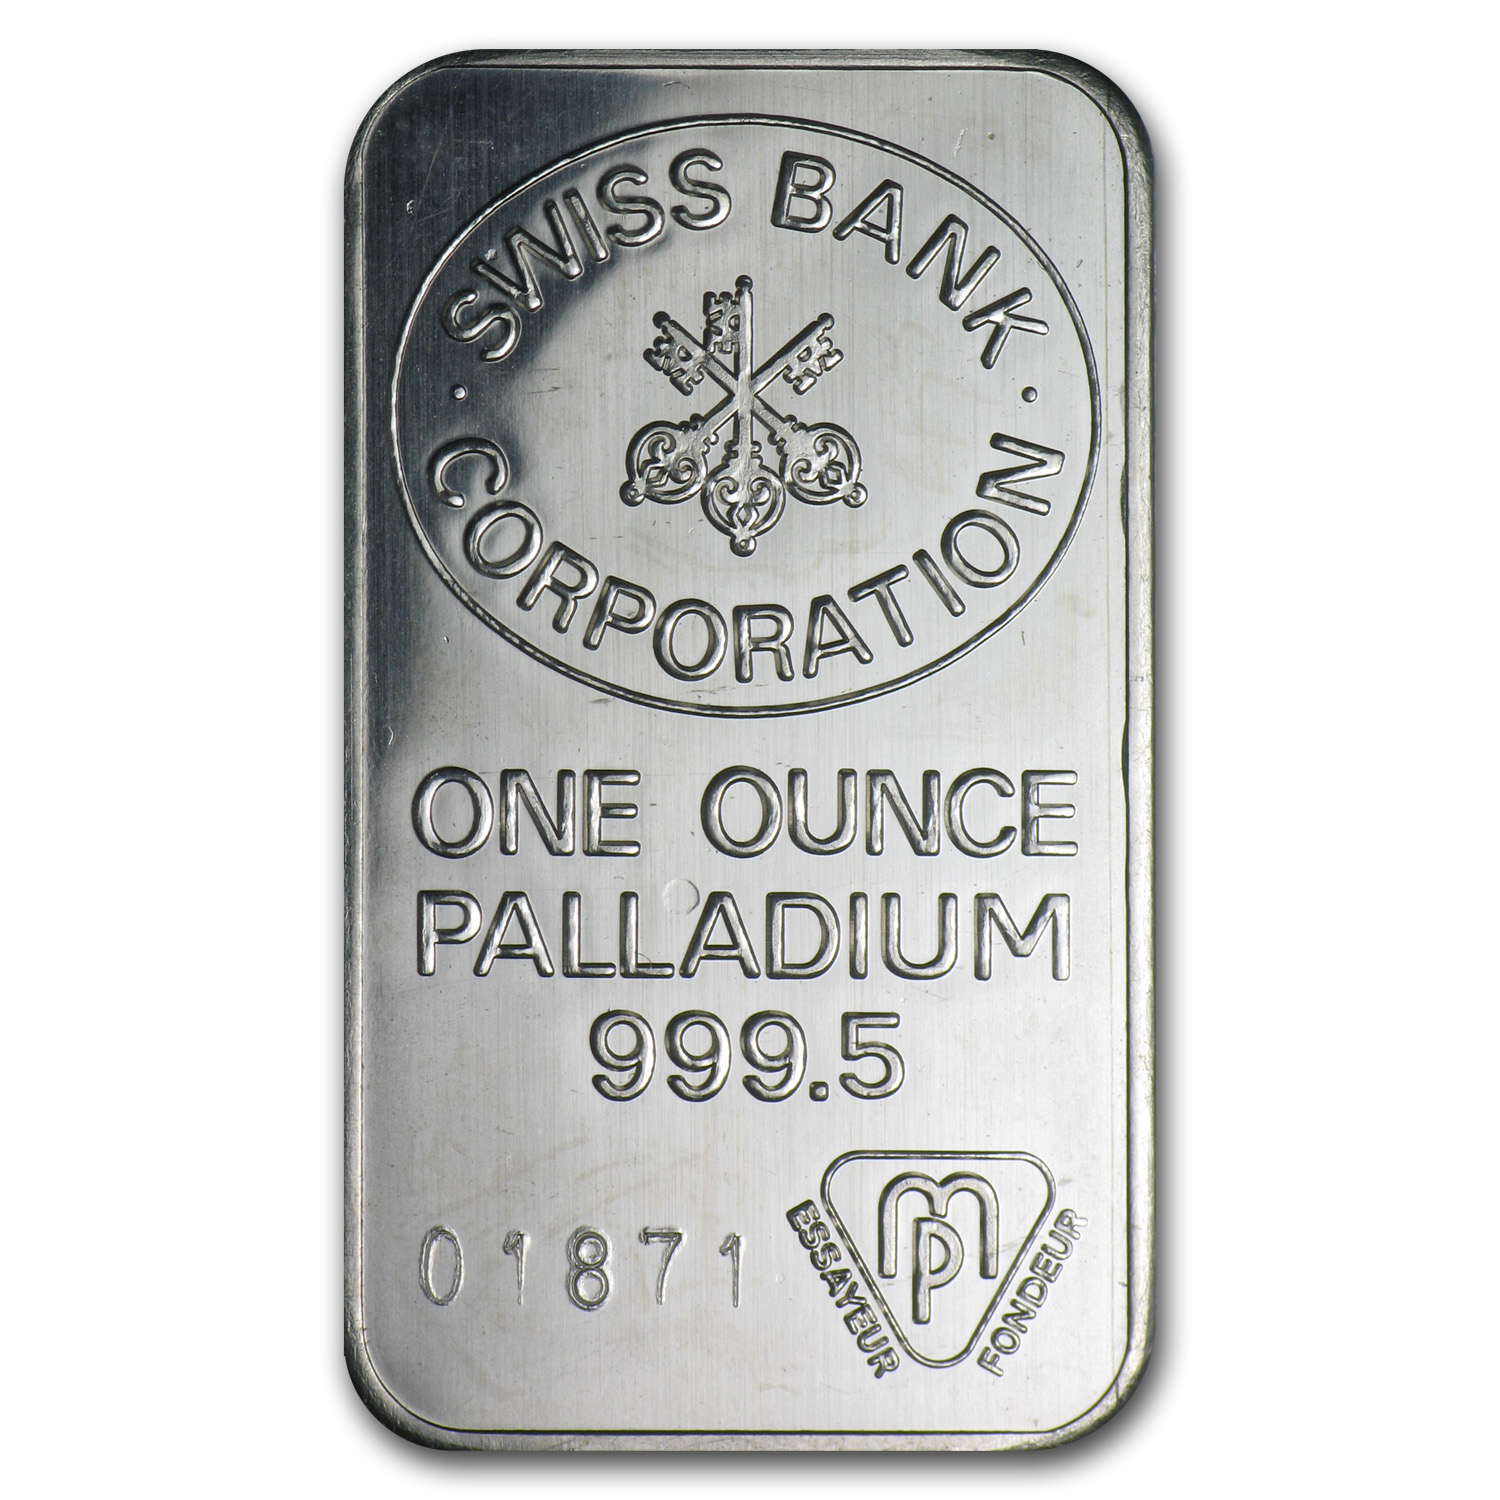 1 oz Swiss Bank Corporation Palladium Bar .9995 Fine